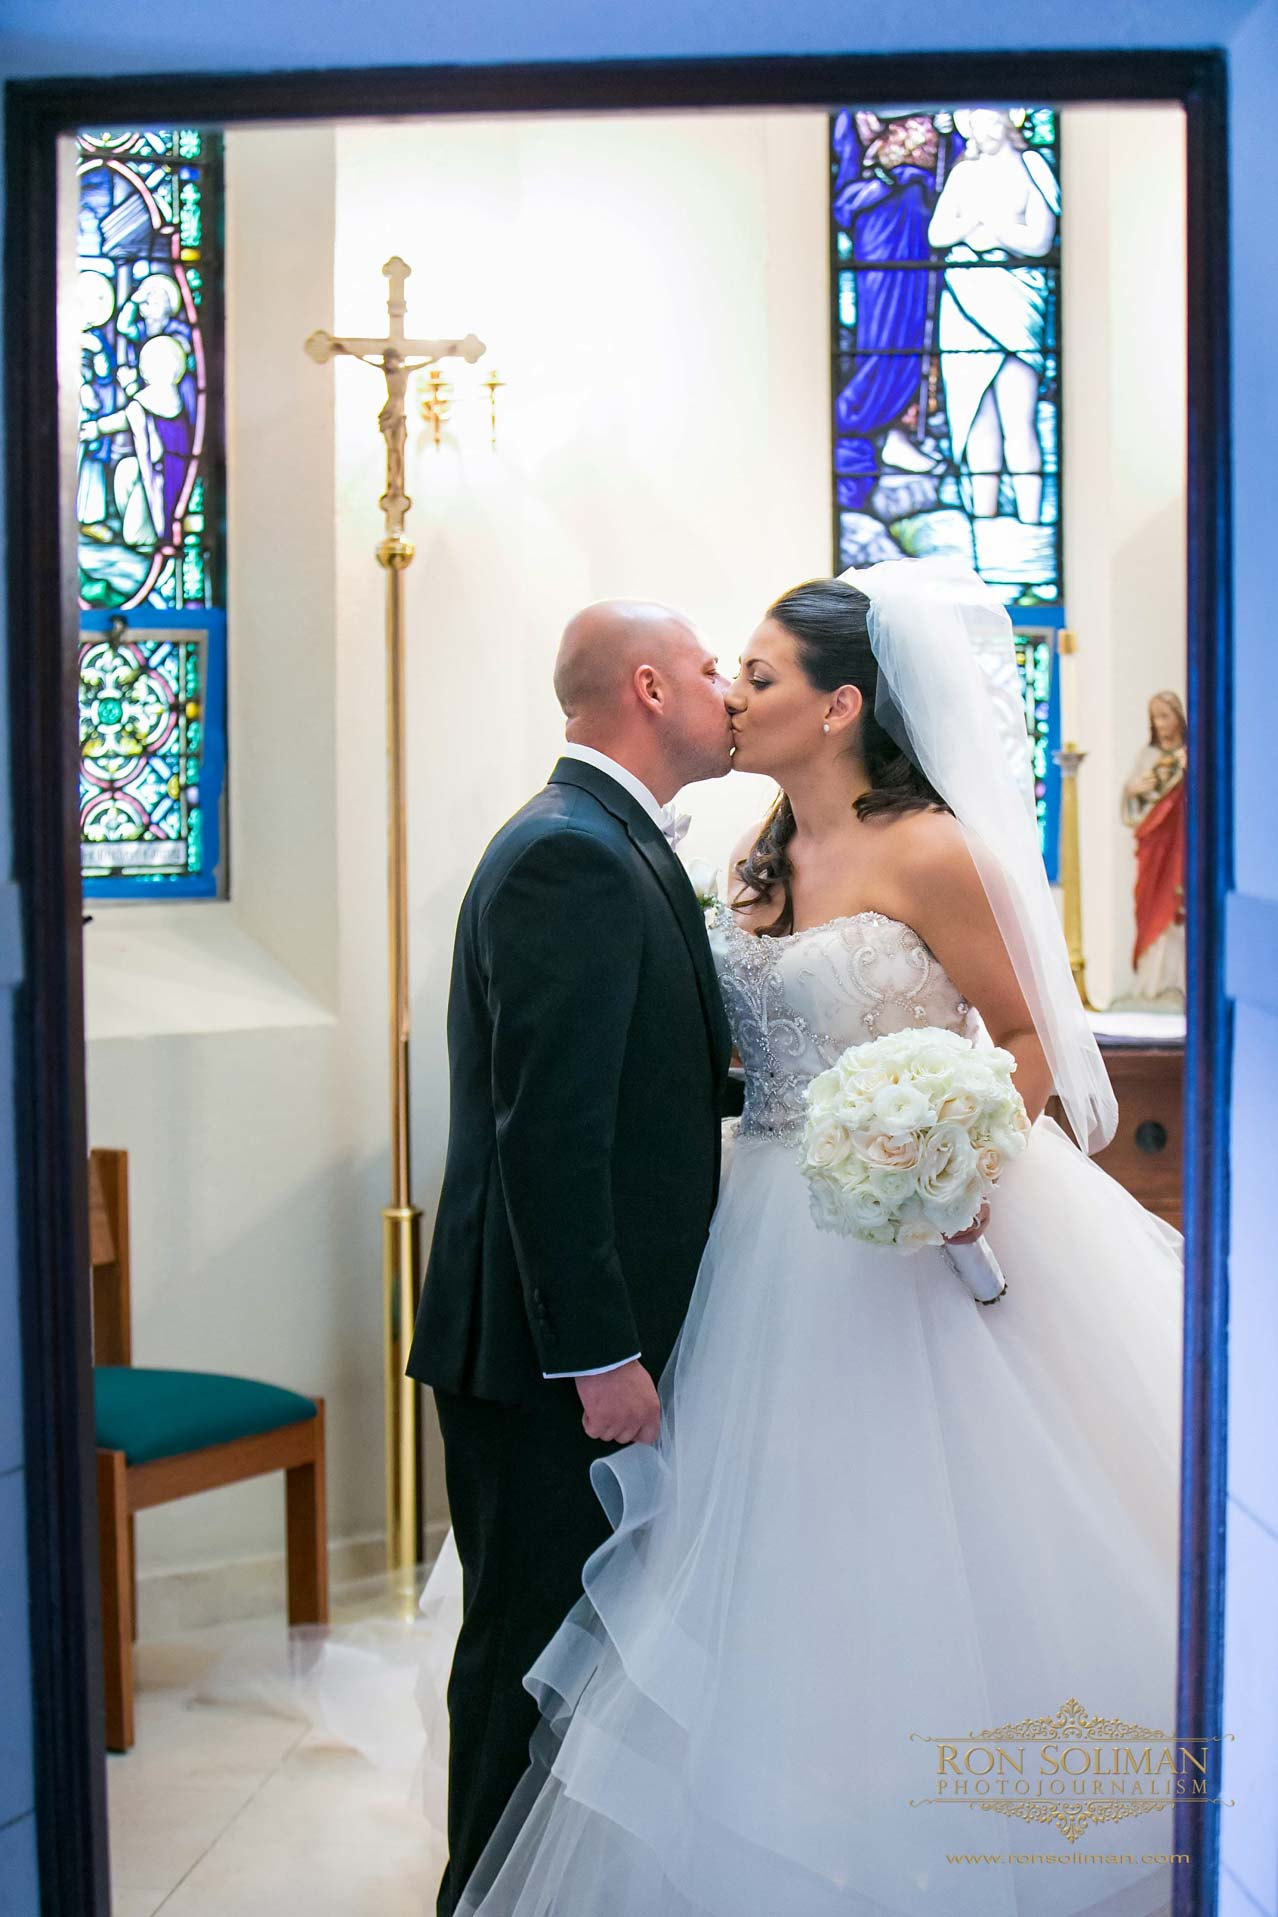 New jersey Wedding photojournalist